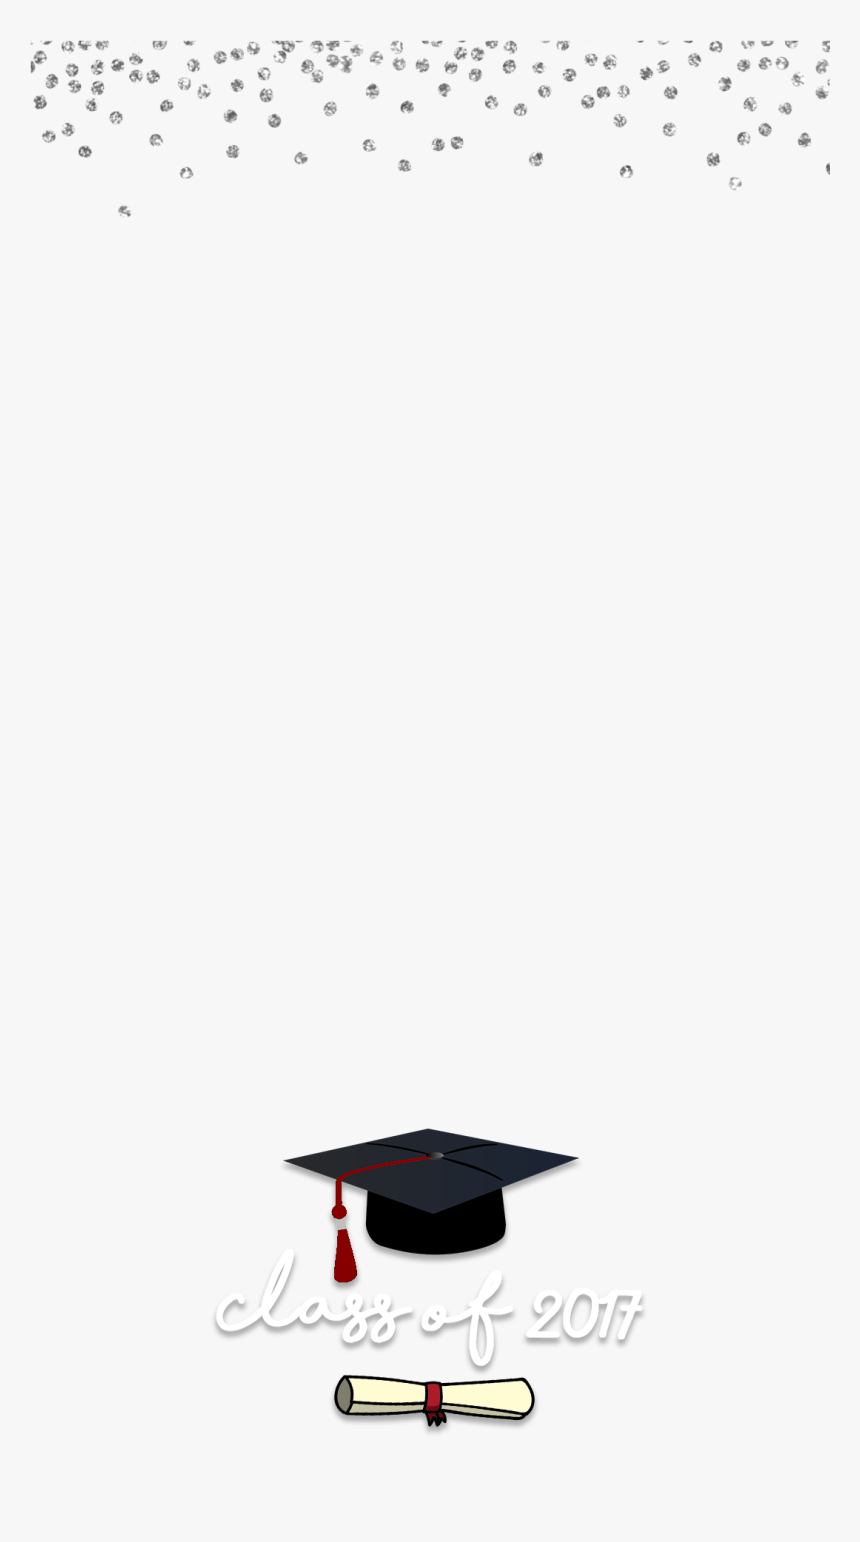 Snapchat Filters Clipart Black And White - Snapchat Graduation Filters 2018, HD Png Download, Free Download